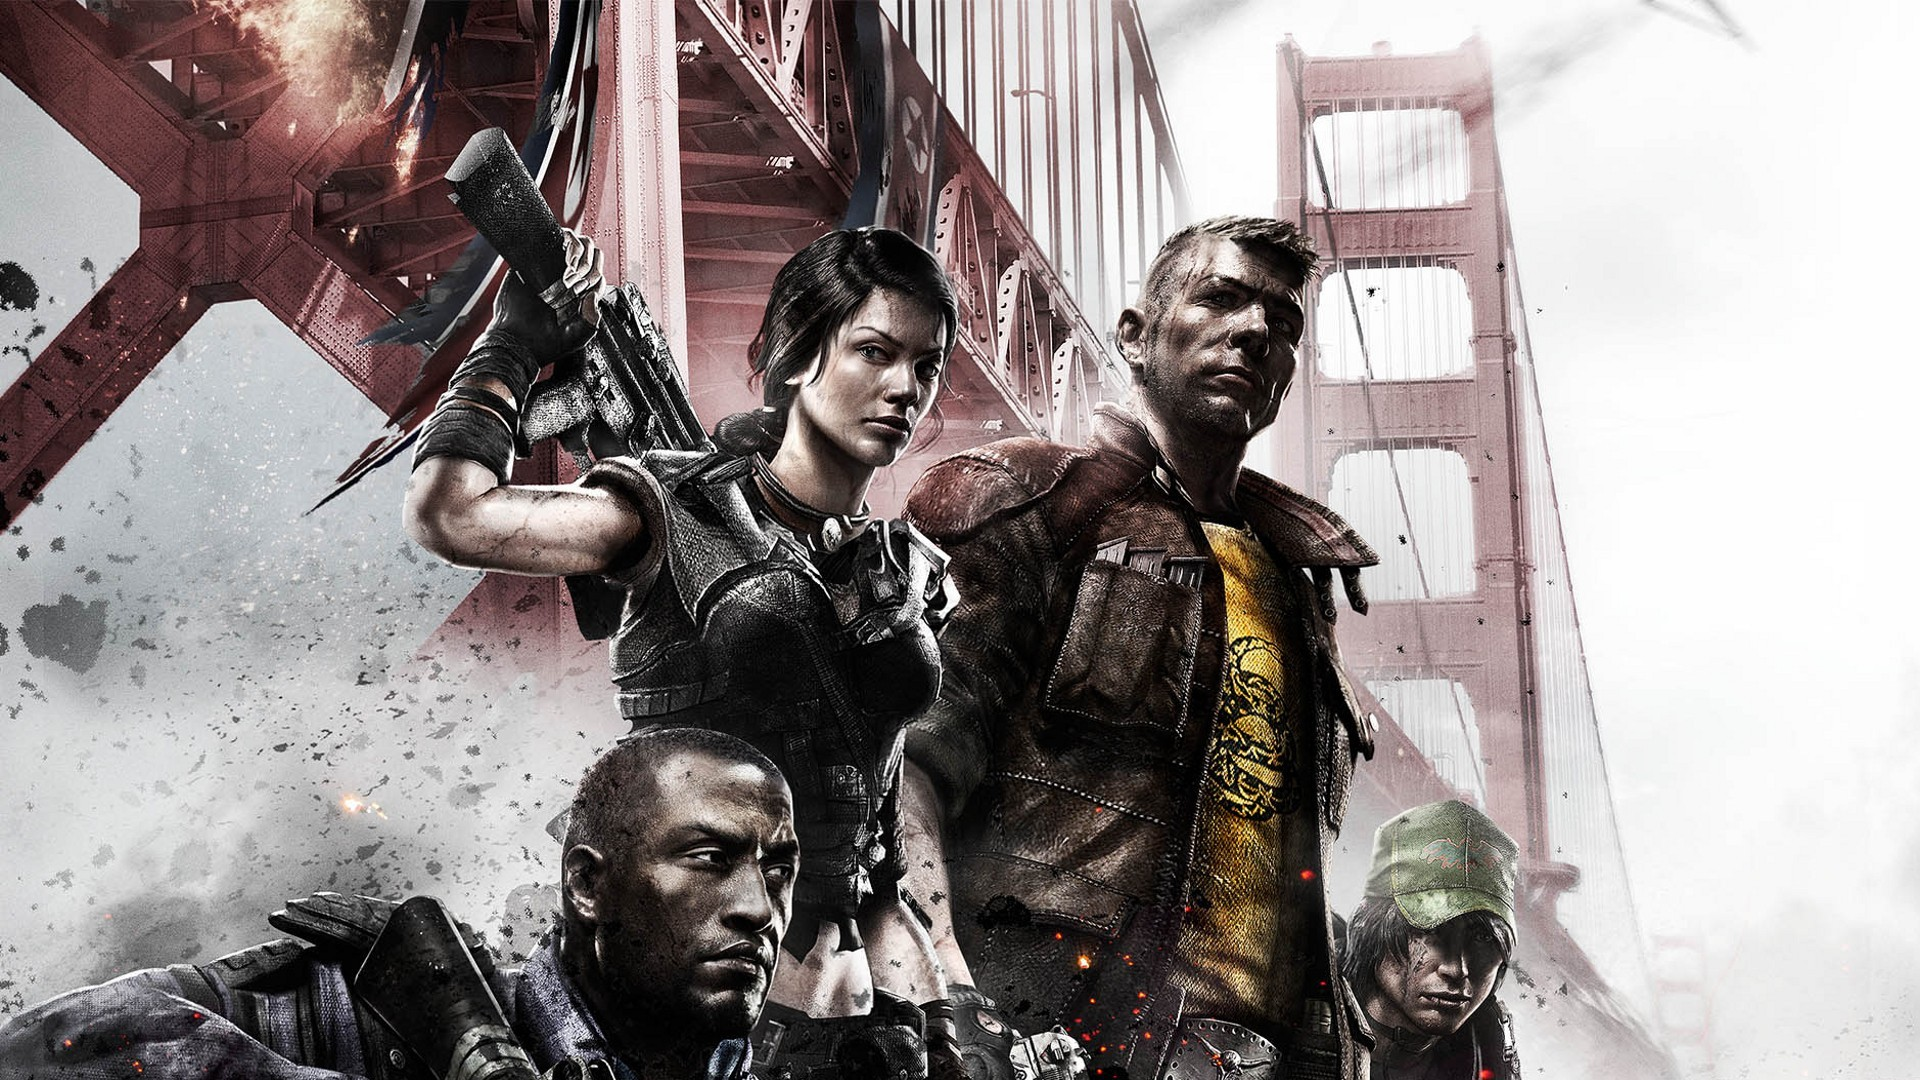 homefront-game-hd-wallpaper-1920x1080-26688